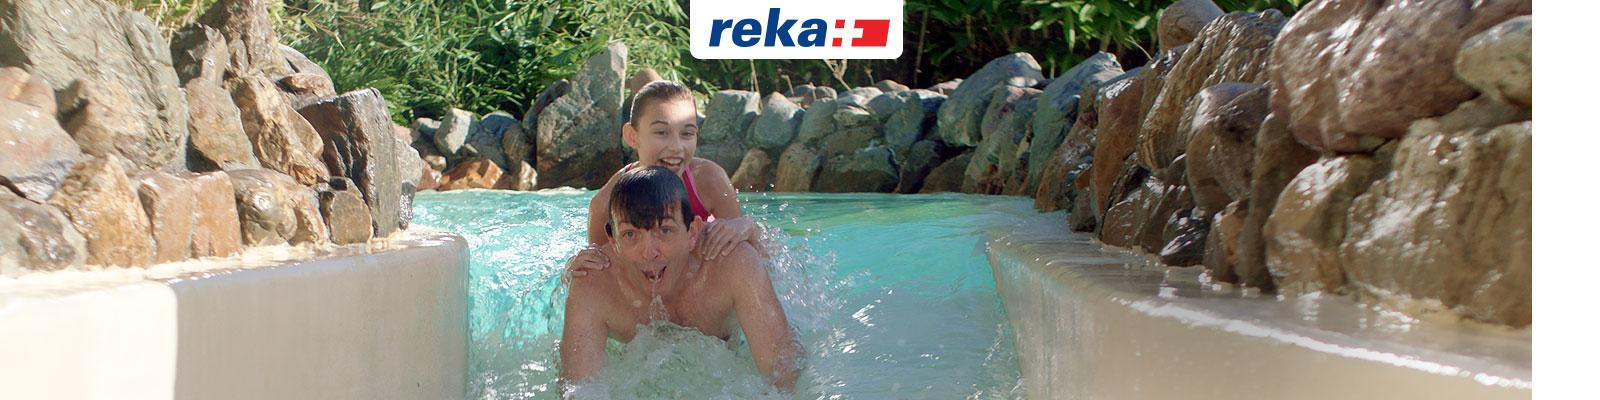 Reka Center Parcs